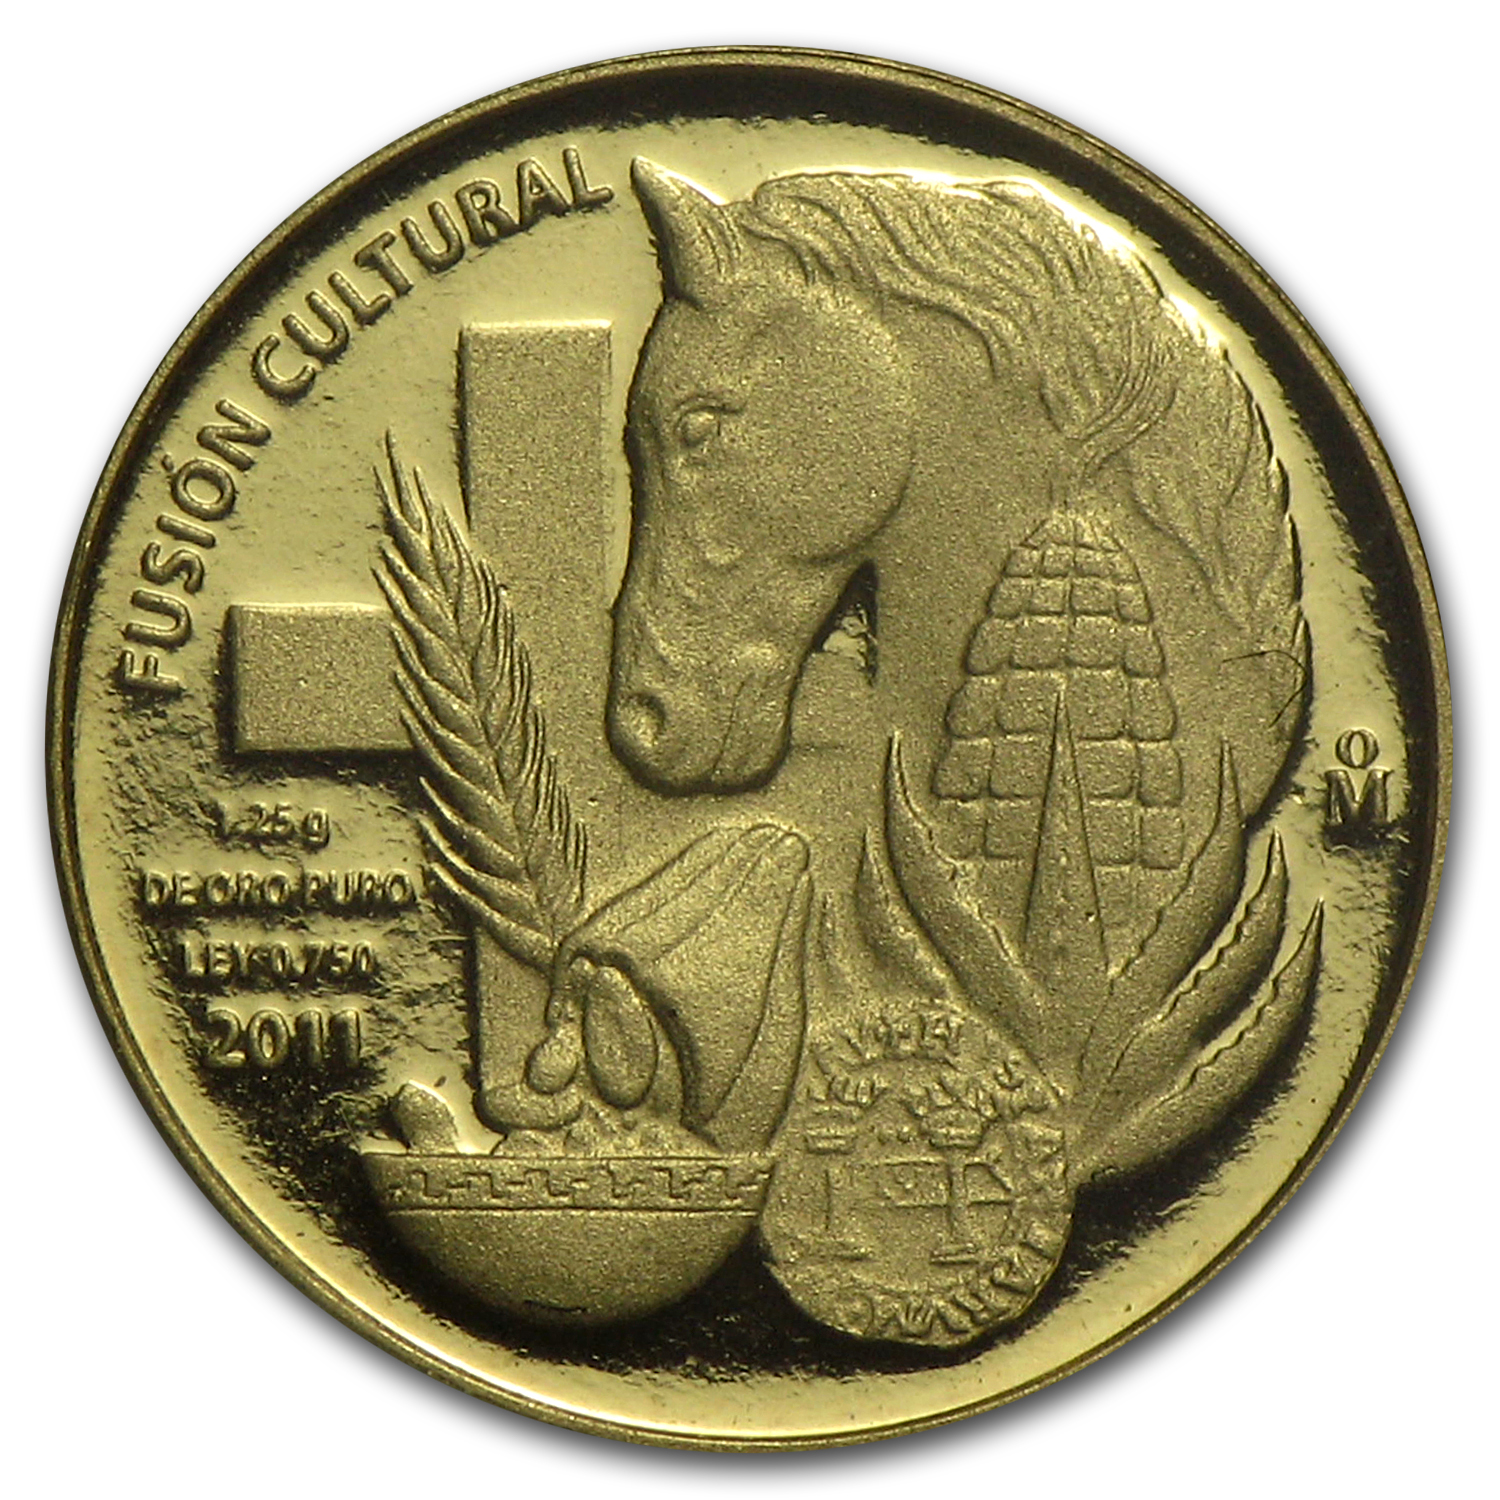 2011 Mexico Gold La Mercancía Proof (w/cacao bean case)